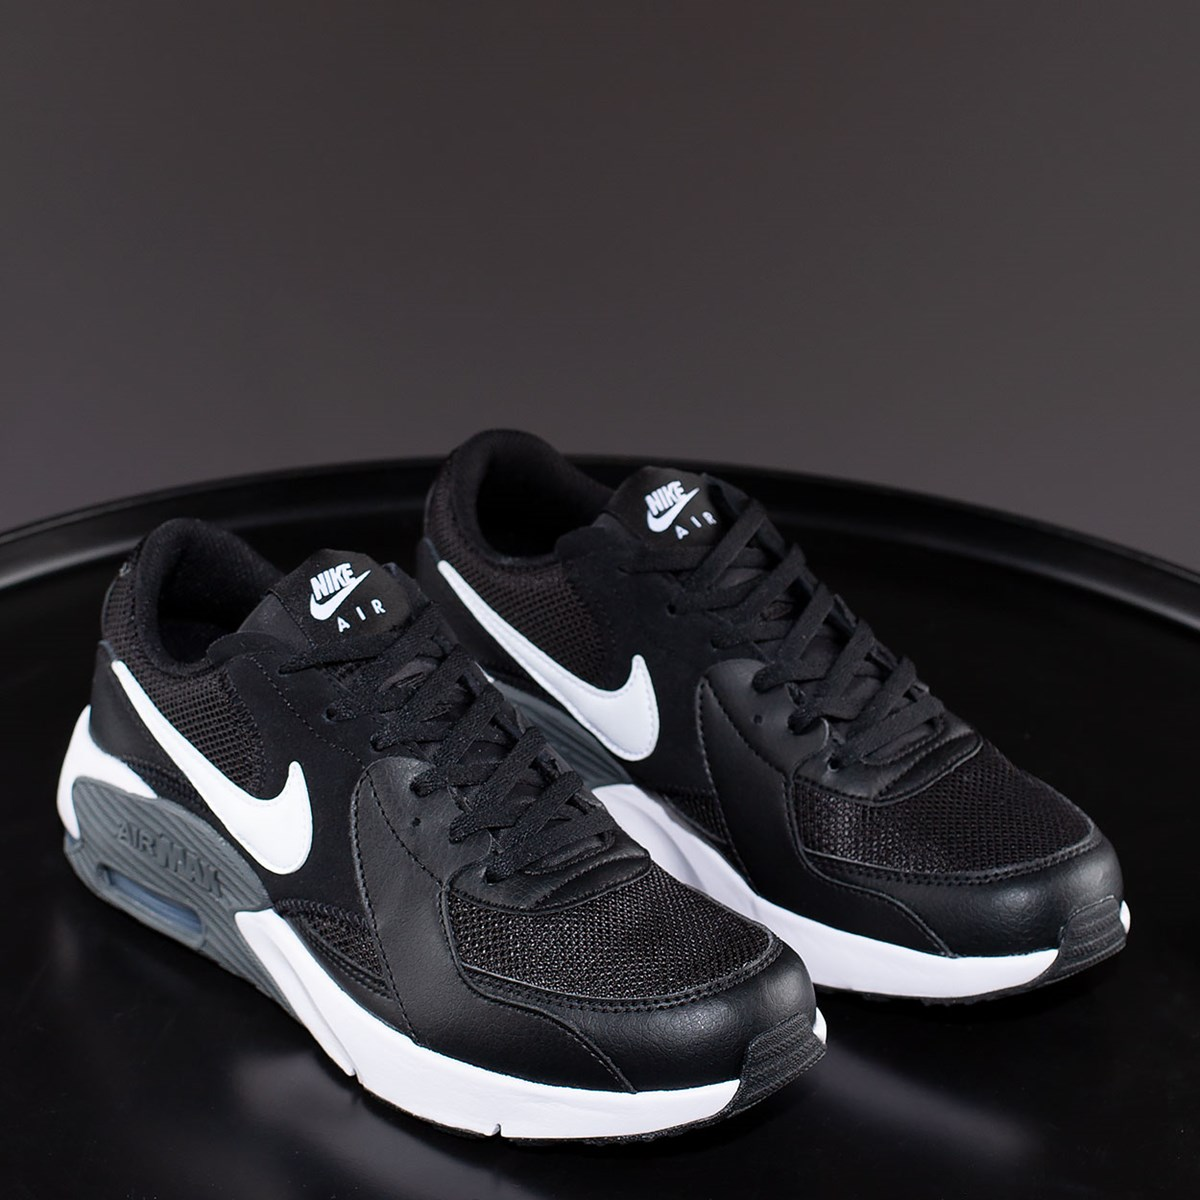 Tênis Nike Air Max Excee Black White CD6894-001